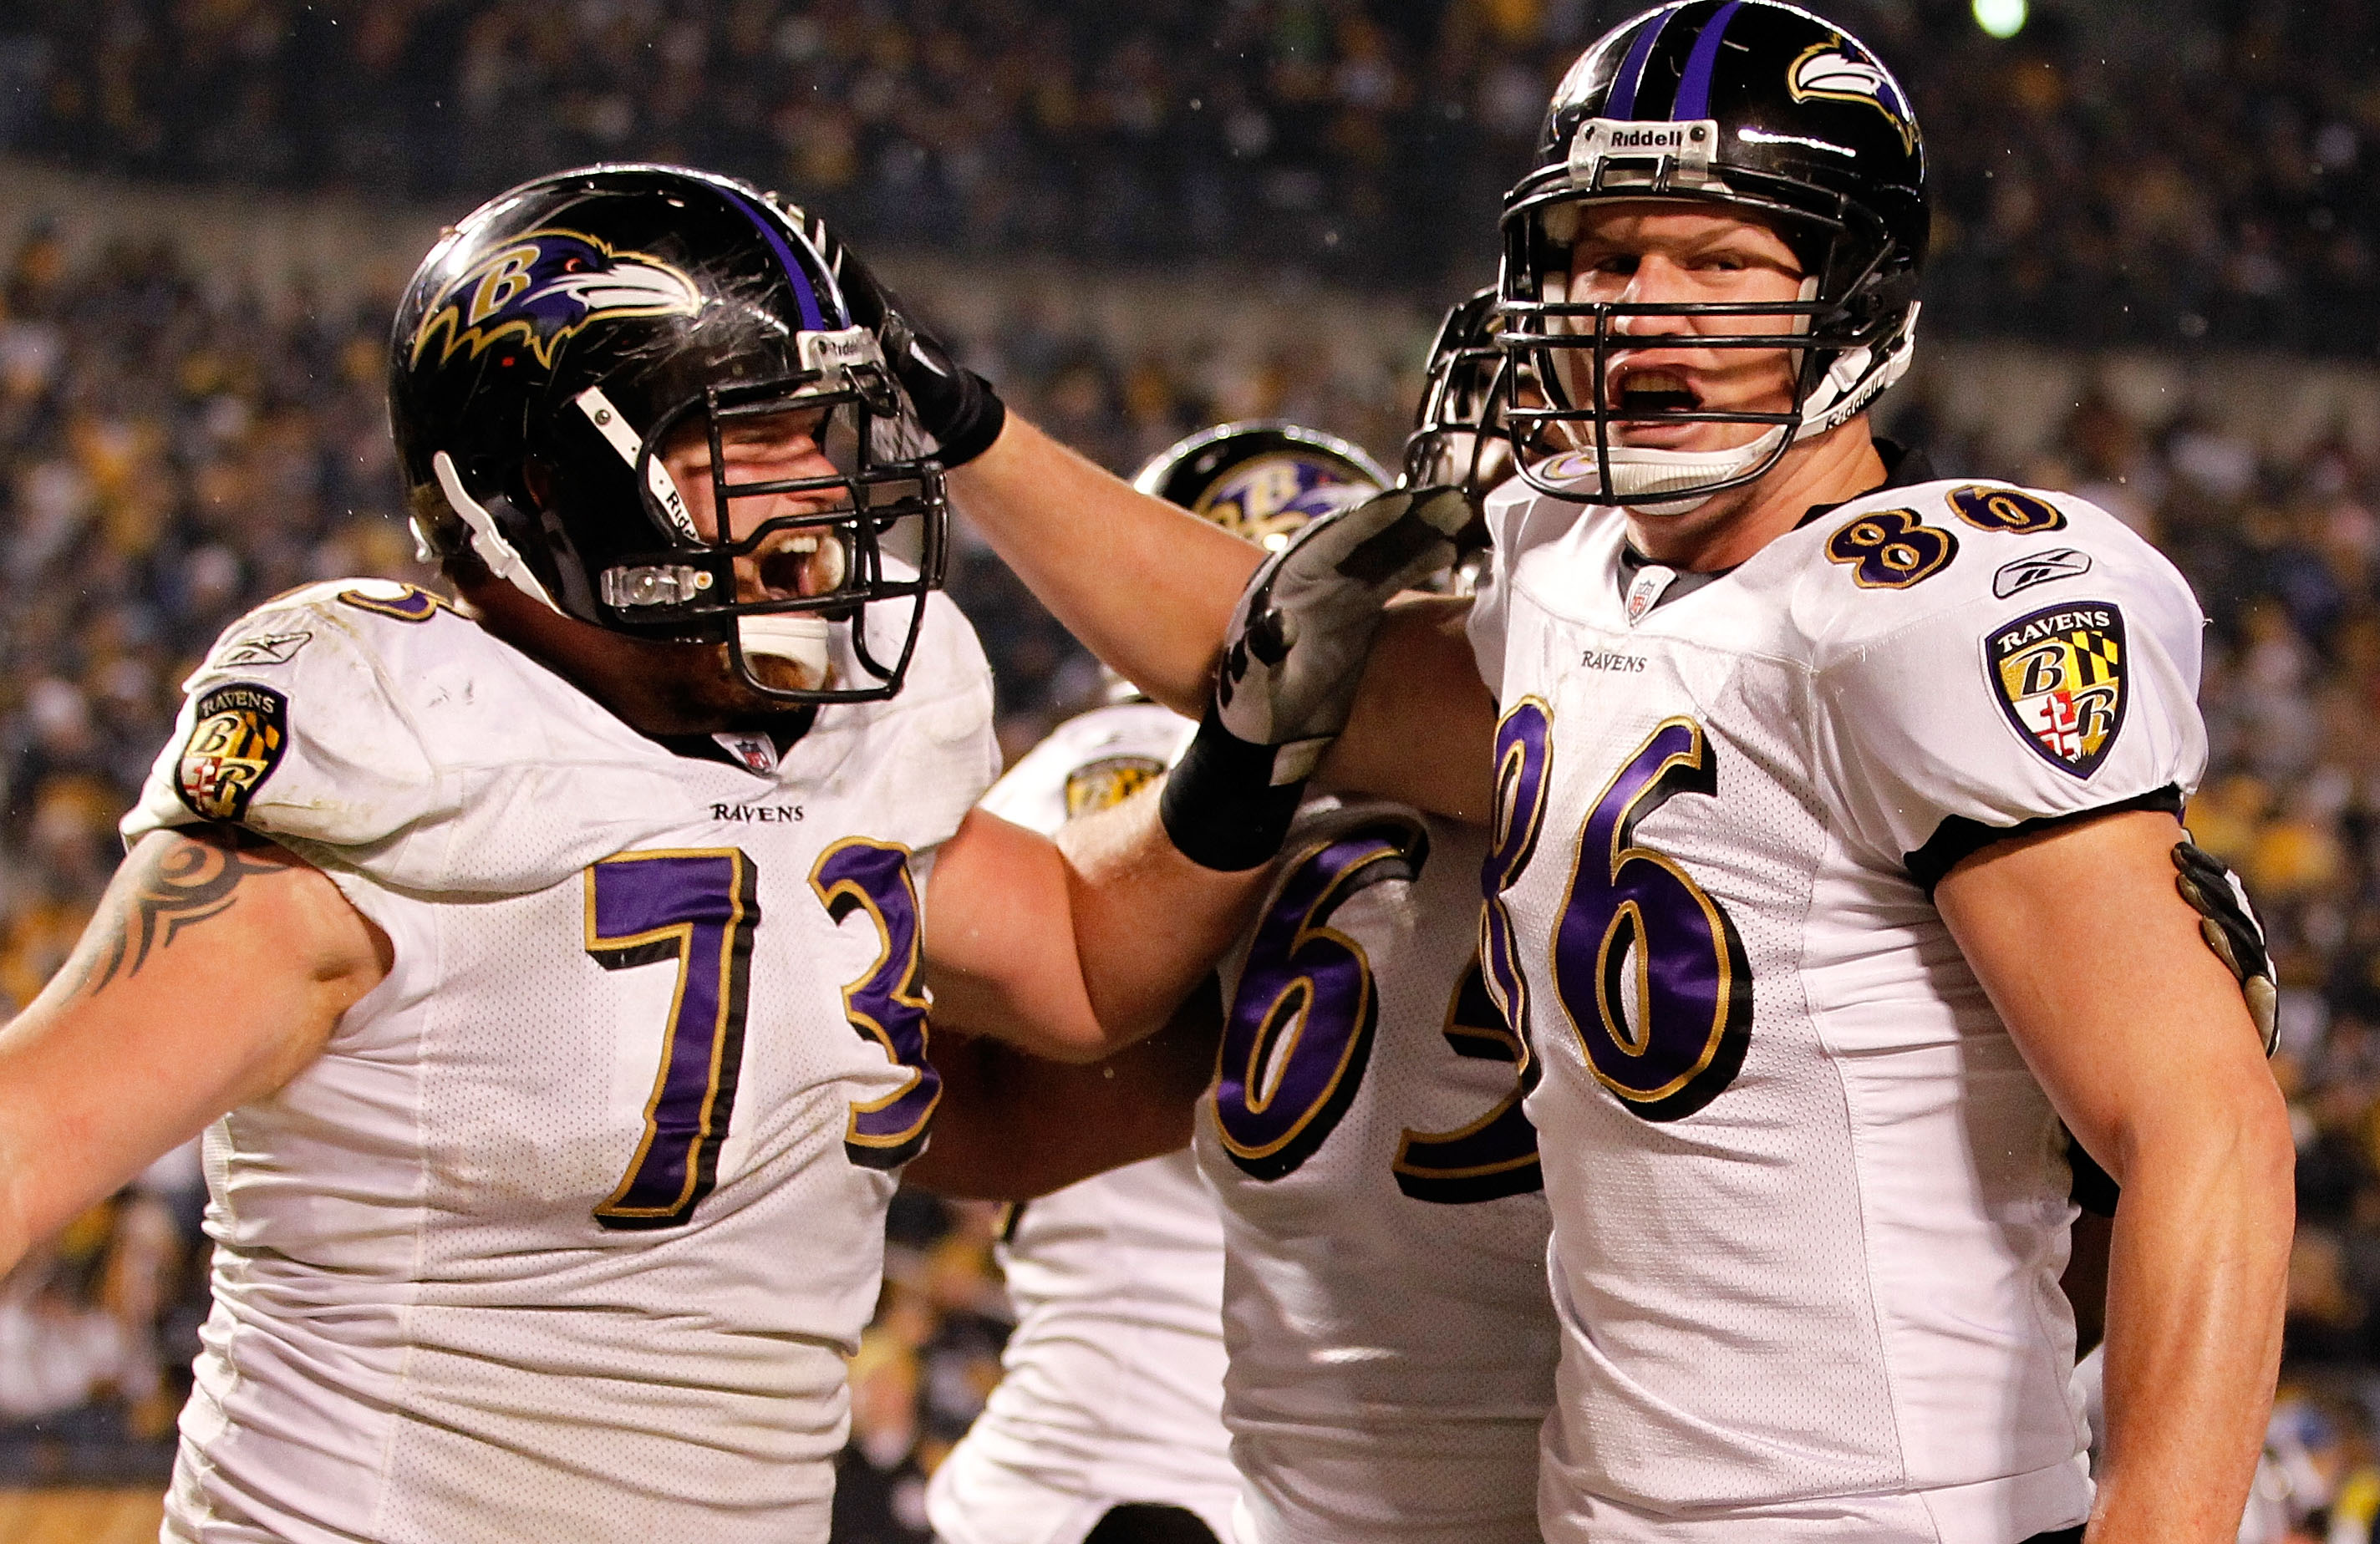 PITTSBURGH, PA - JANUARY 15:  Tight end Todd Heap #86 of the Baltimore Ravens celebrates with teammates after scoring on a four-yard touchdown pass against the Pittsburgh Steelers in the second quarter of the AFC Divisional Playoff Game at Heinz Field on